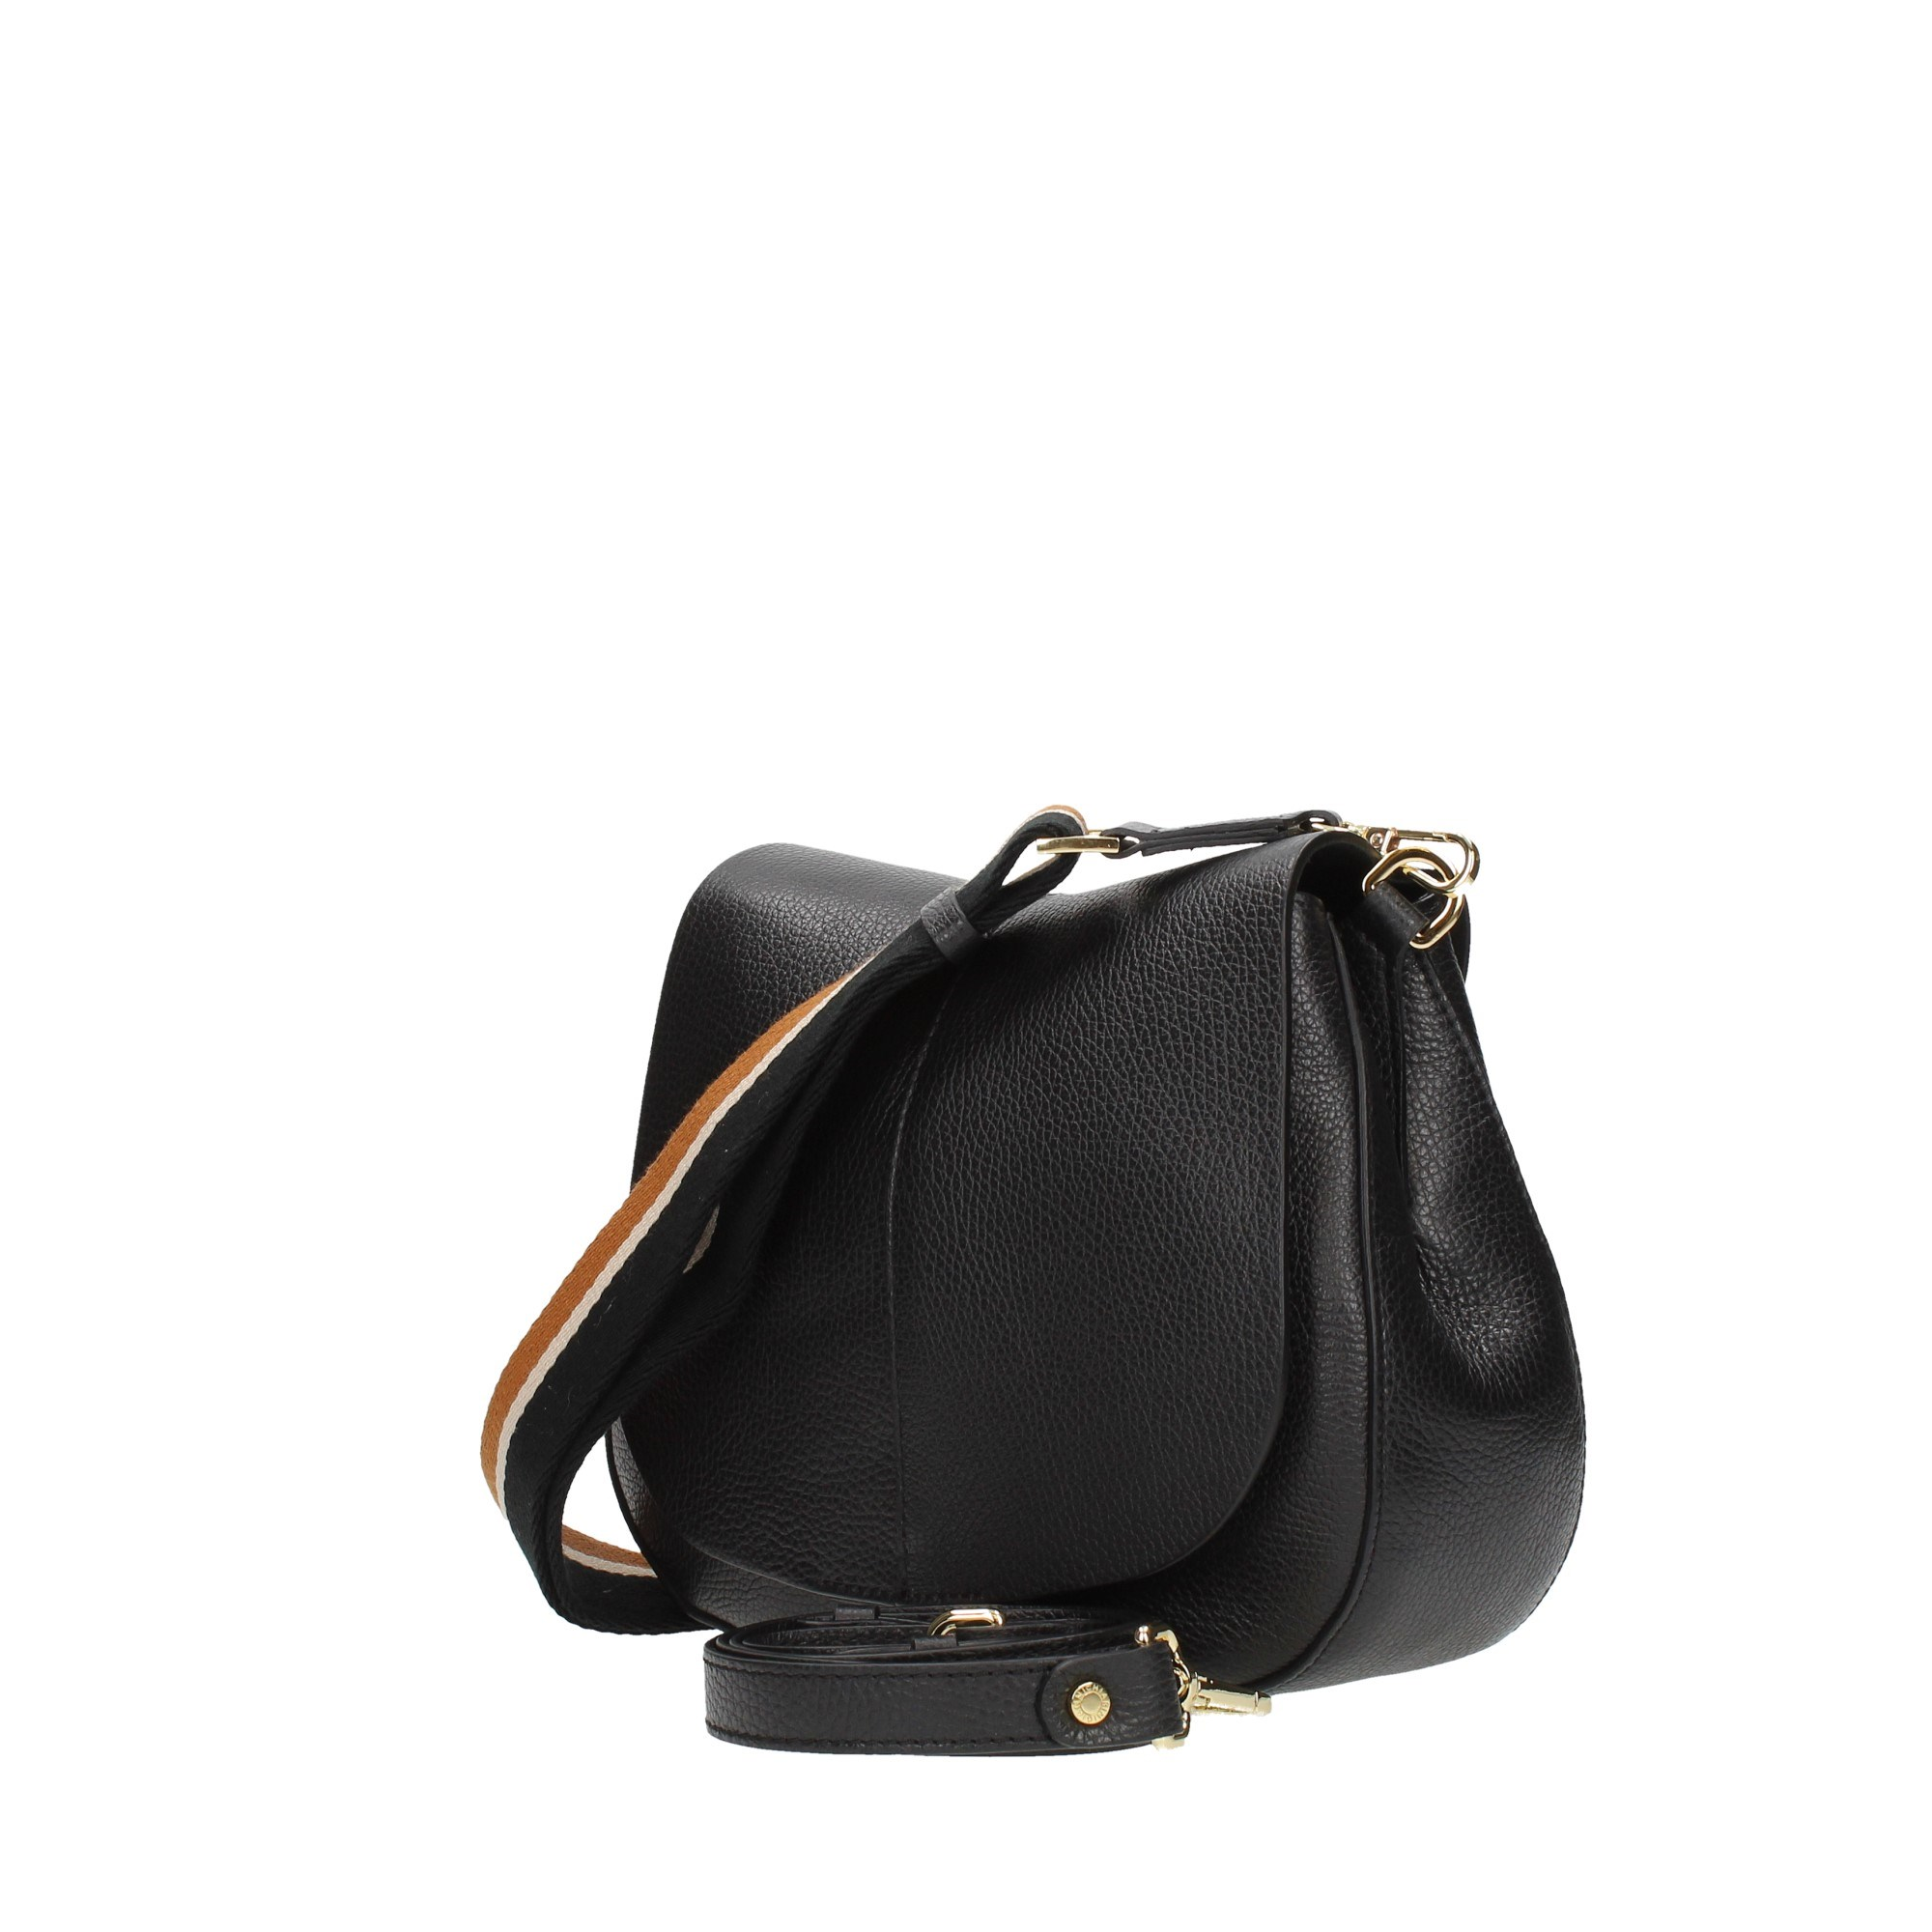 Gianni Chiarini Accessories Women Shoulder Bags Black BS6036/21PECL GRN-NA